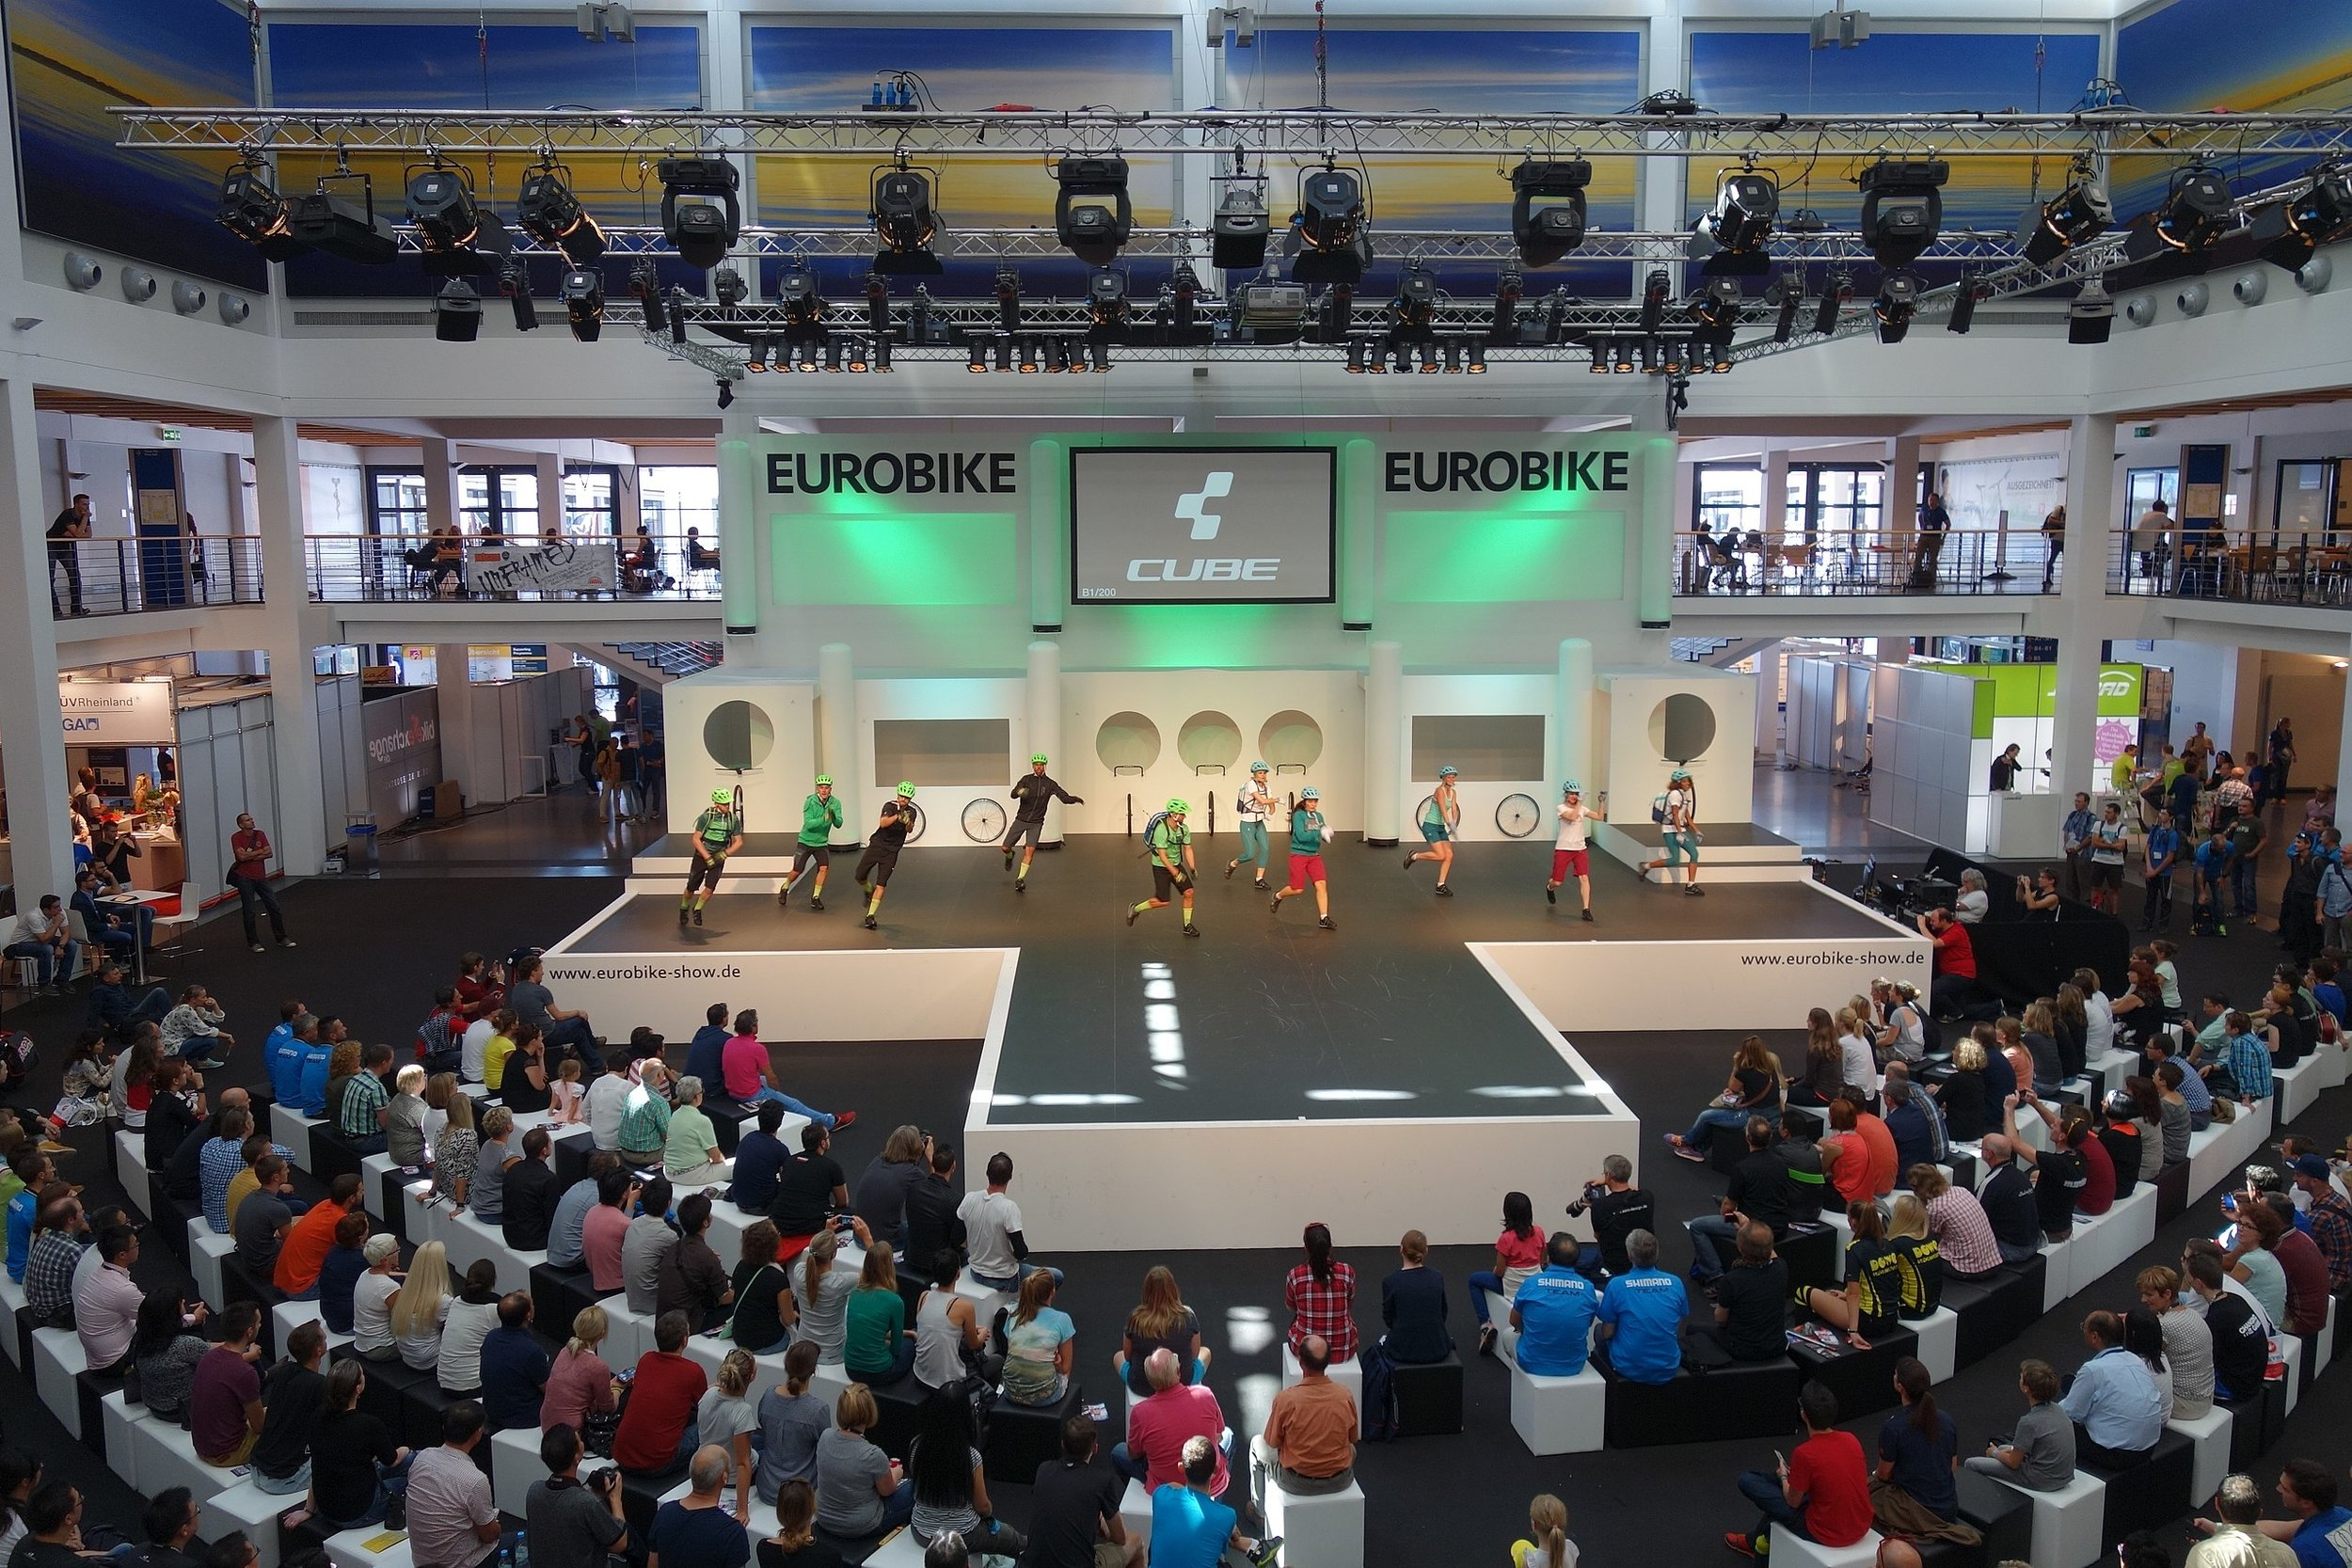 Just look at what you are missing! It's a Eurobike cycling fashion show!